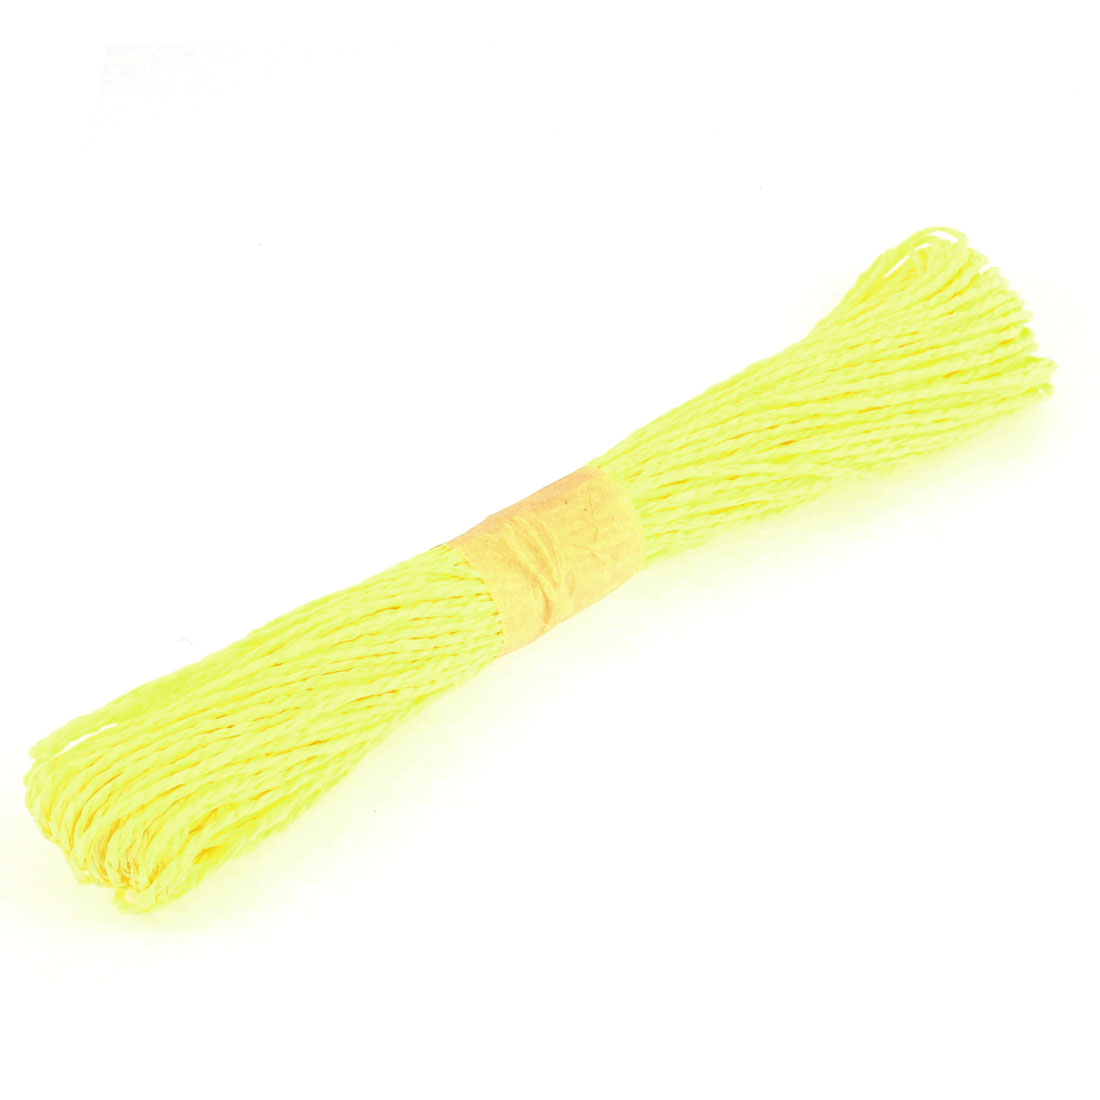 Paper Raffia Cord Ribbon Gift Wrap Craft Pack Rope Strings Light Yellow